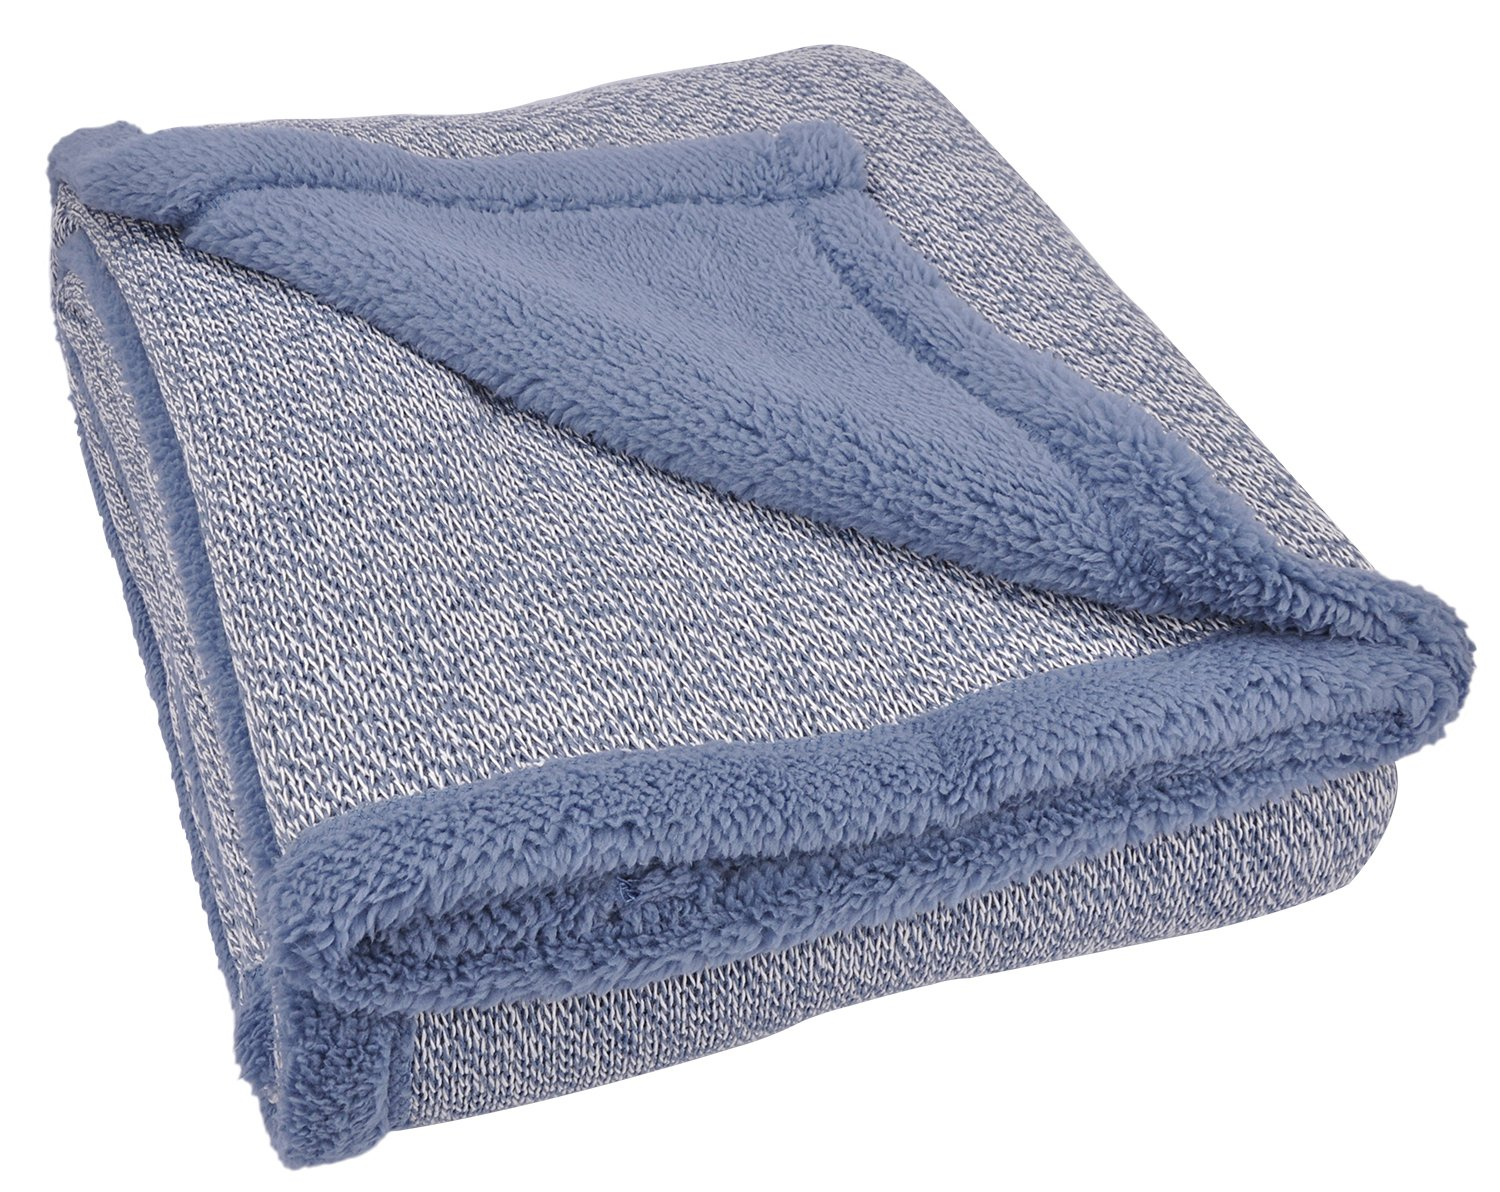 Sherpa Throw Blanket Super Soft Cozy with Plush Fleece for Coach and Bed | Size 50''x 60'' Reversible Warm Knitted Blanket for All Season Blue